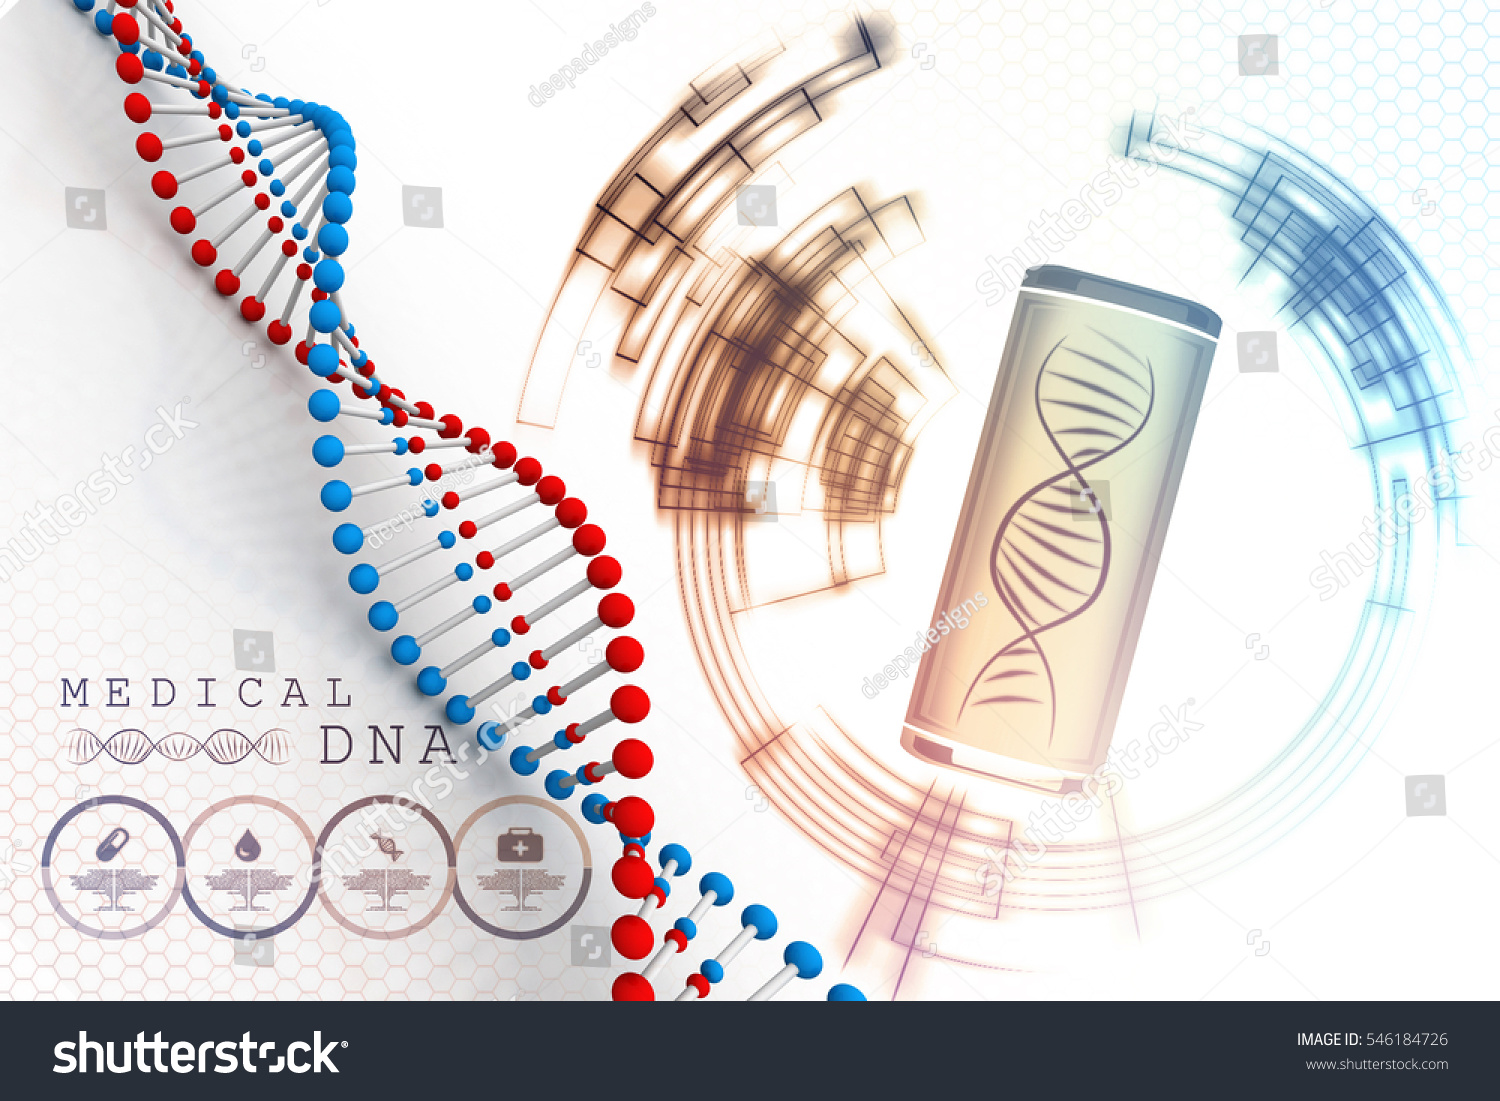 3 d rendering digital illustration dna structure stock illustration 3d rendering digital illustration dna structure ccuart Gallery